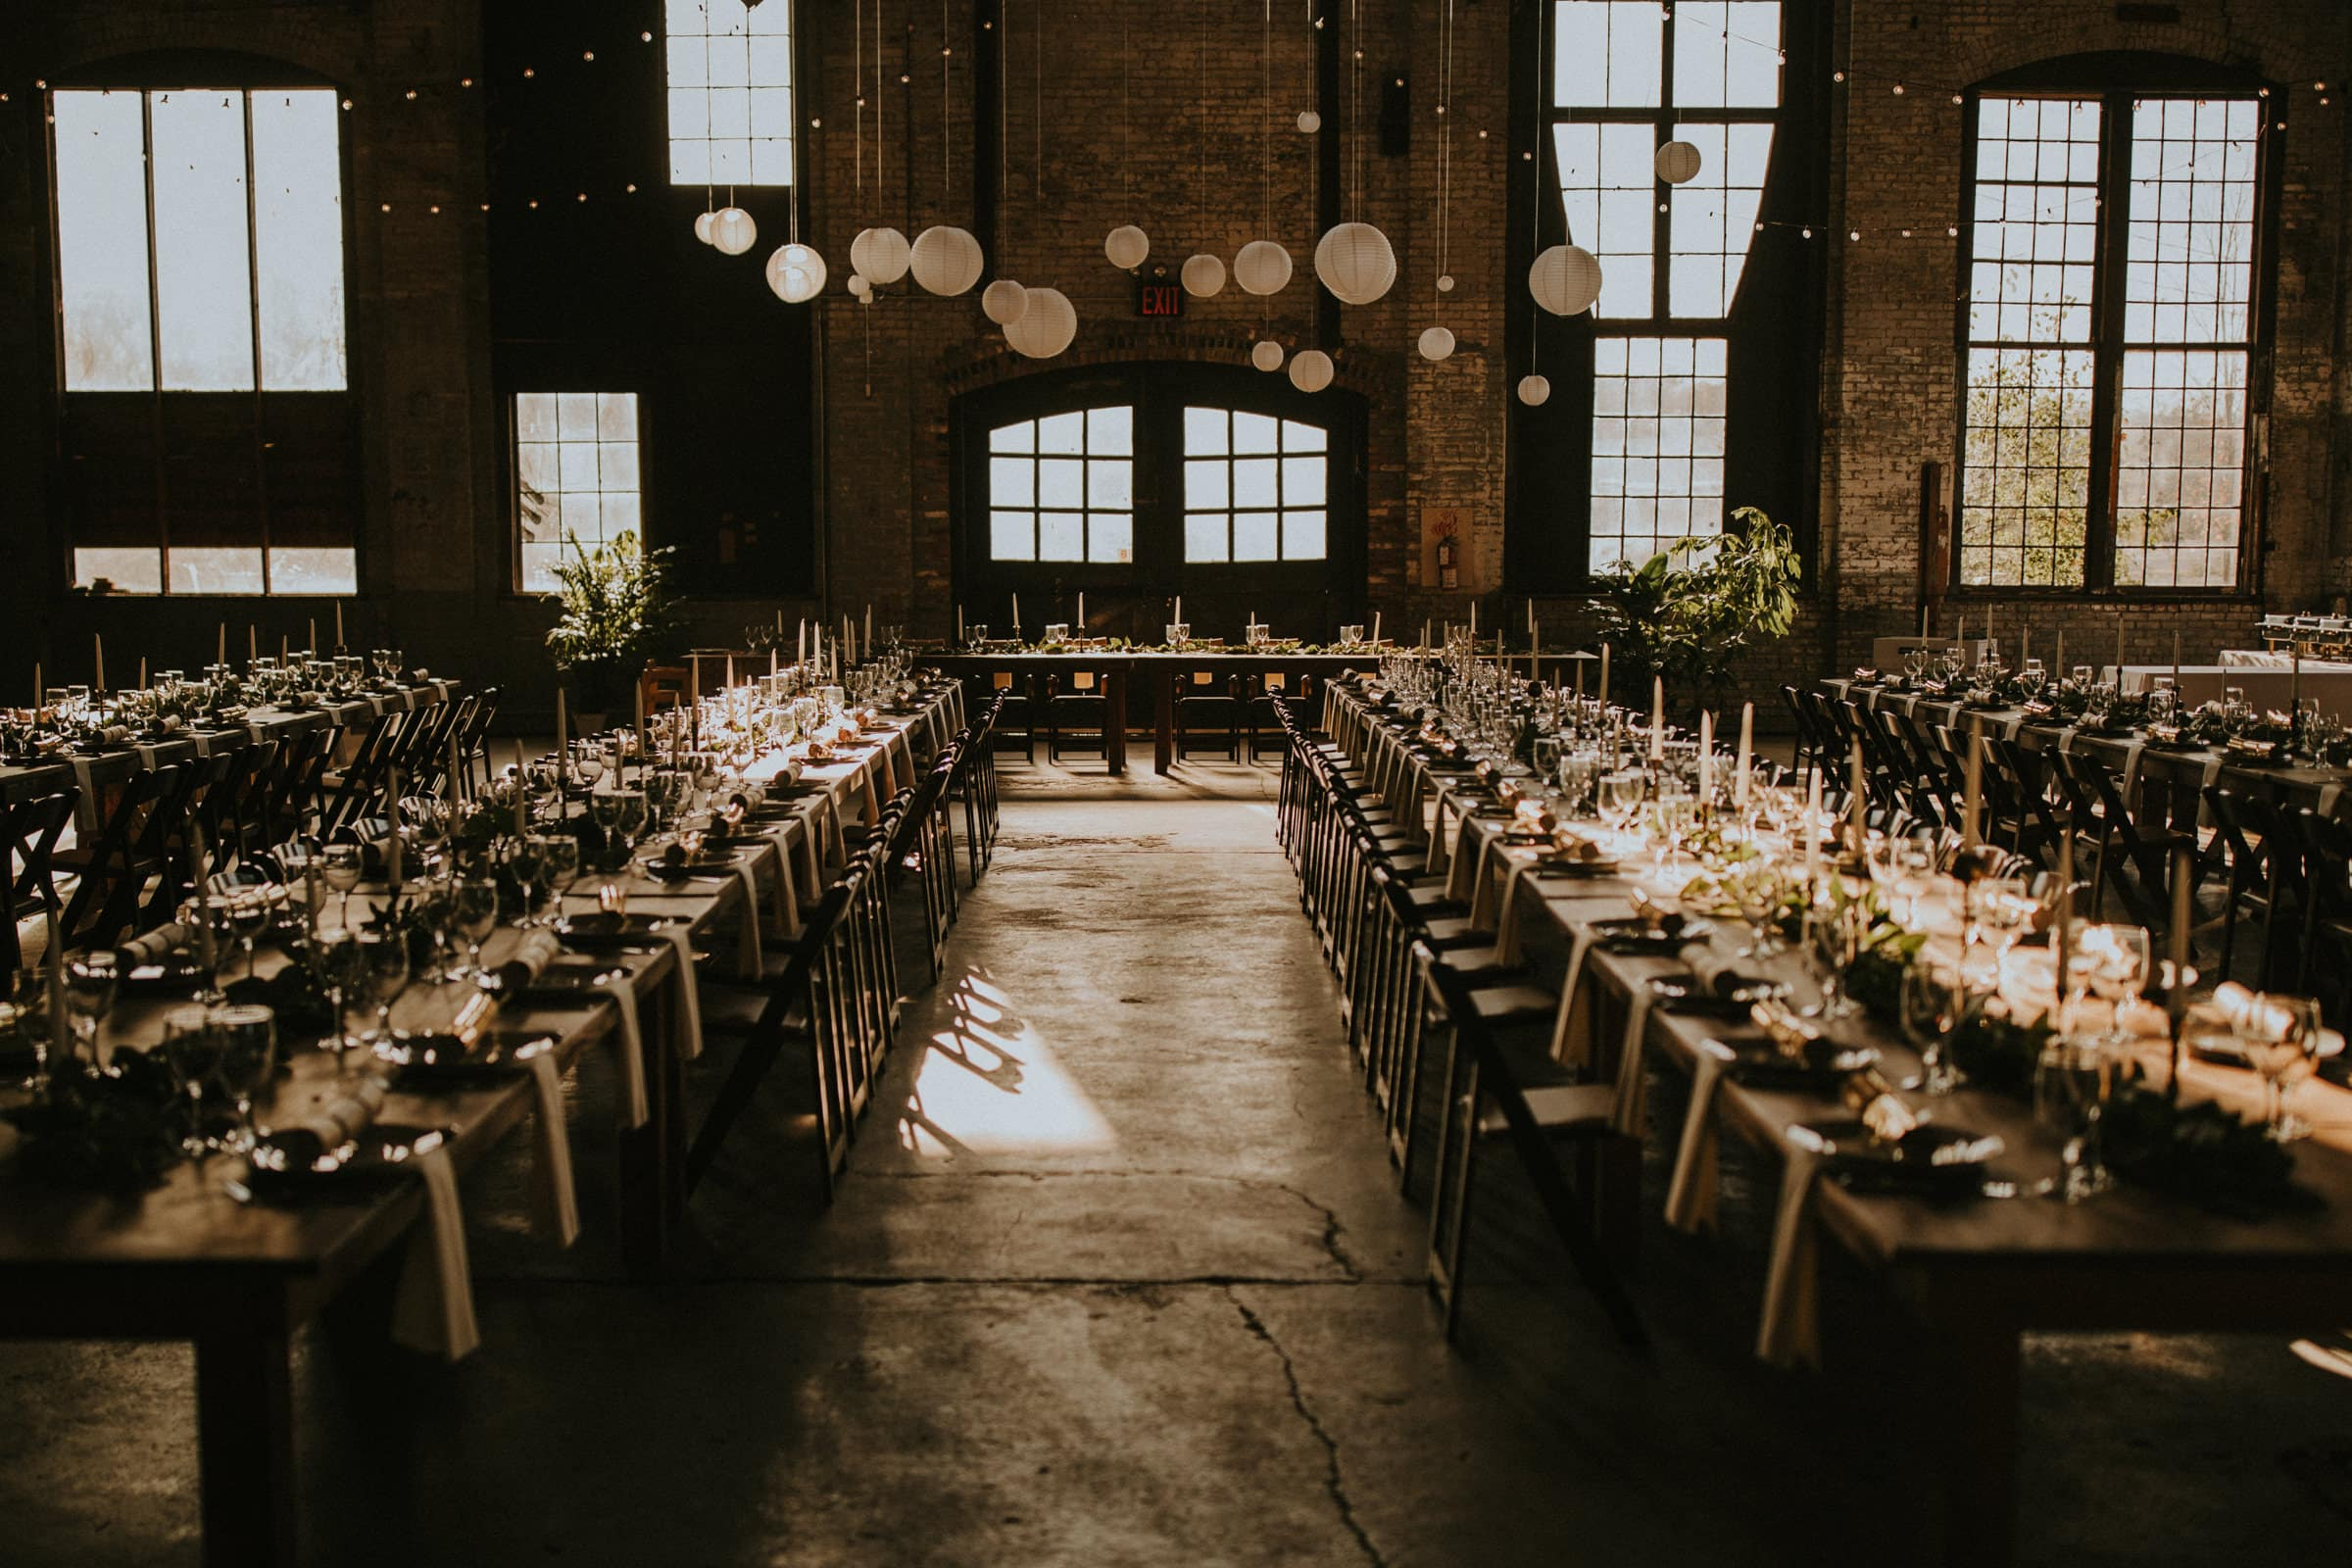 Wedding tables are lined up in a huge industrial hall.